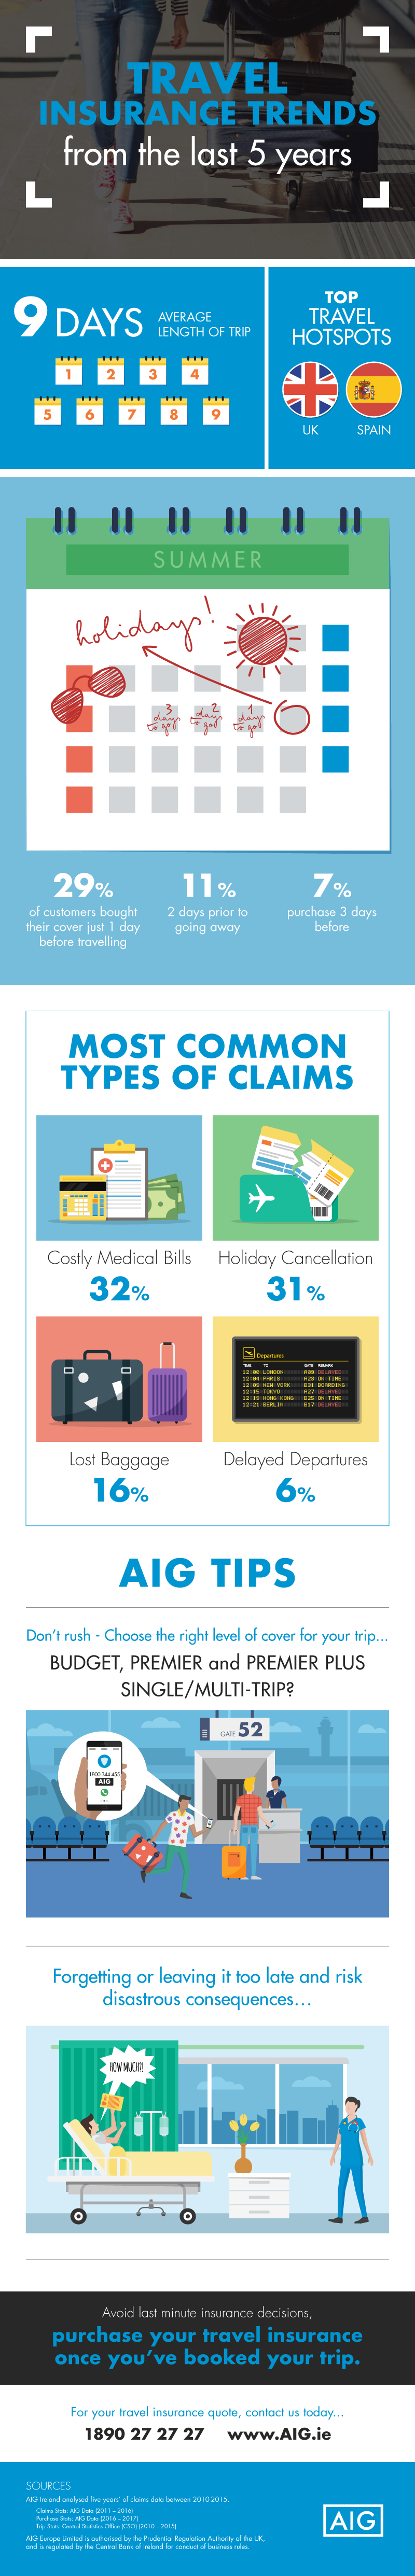 Aig-travel-trends (1)